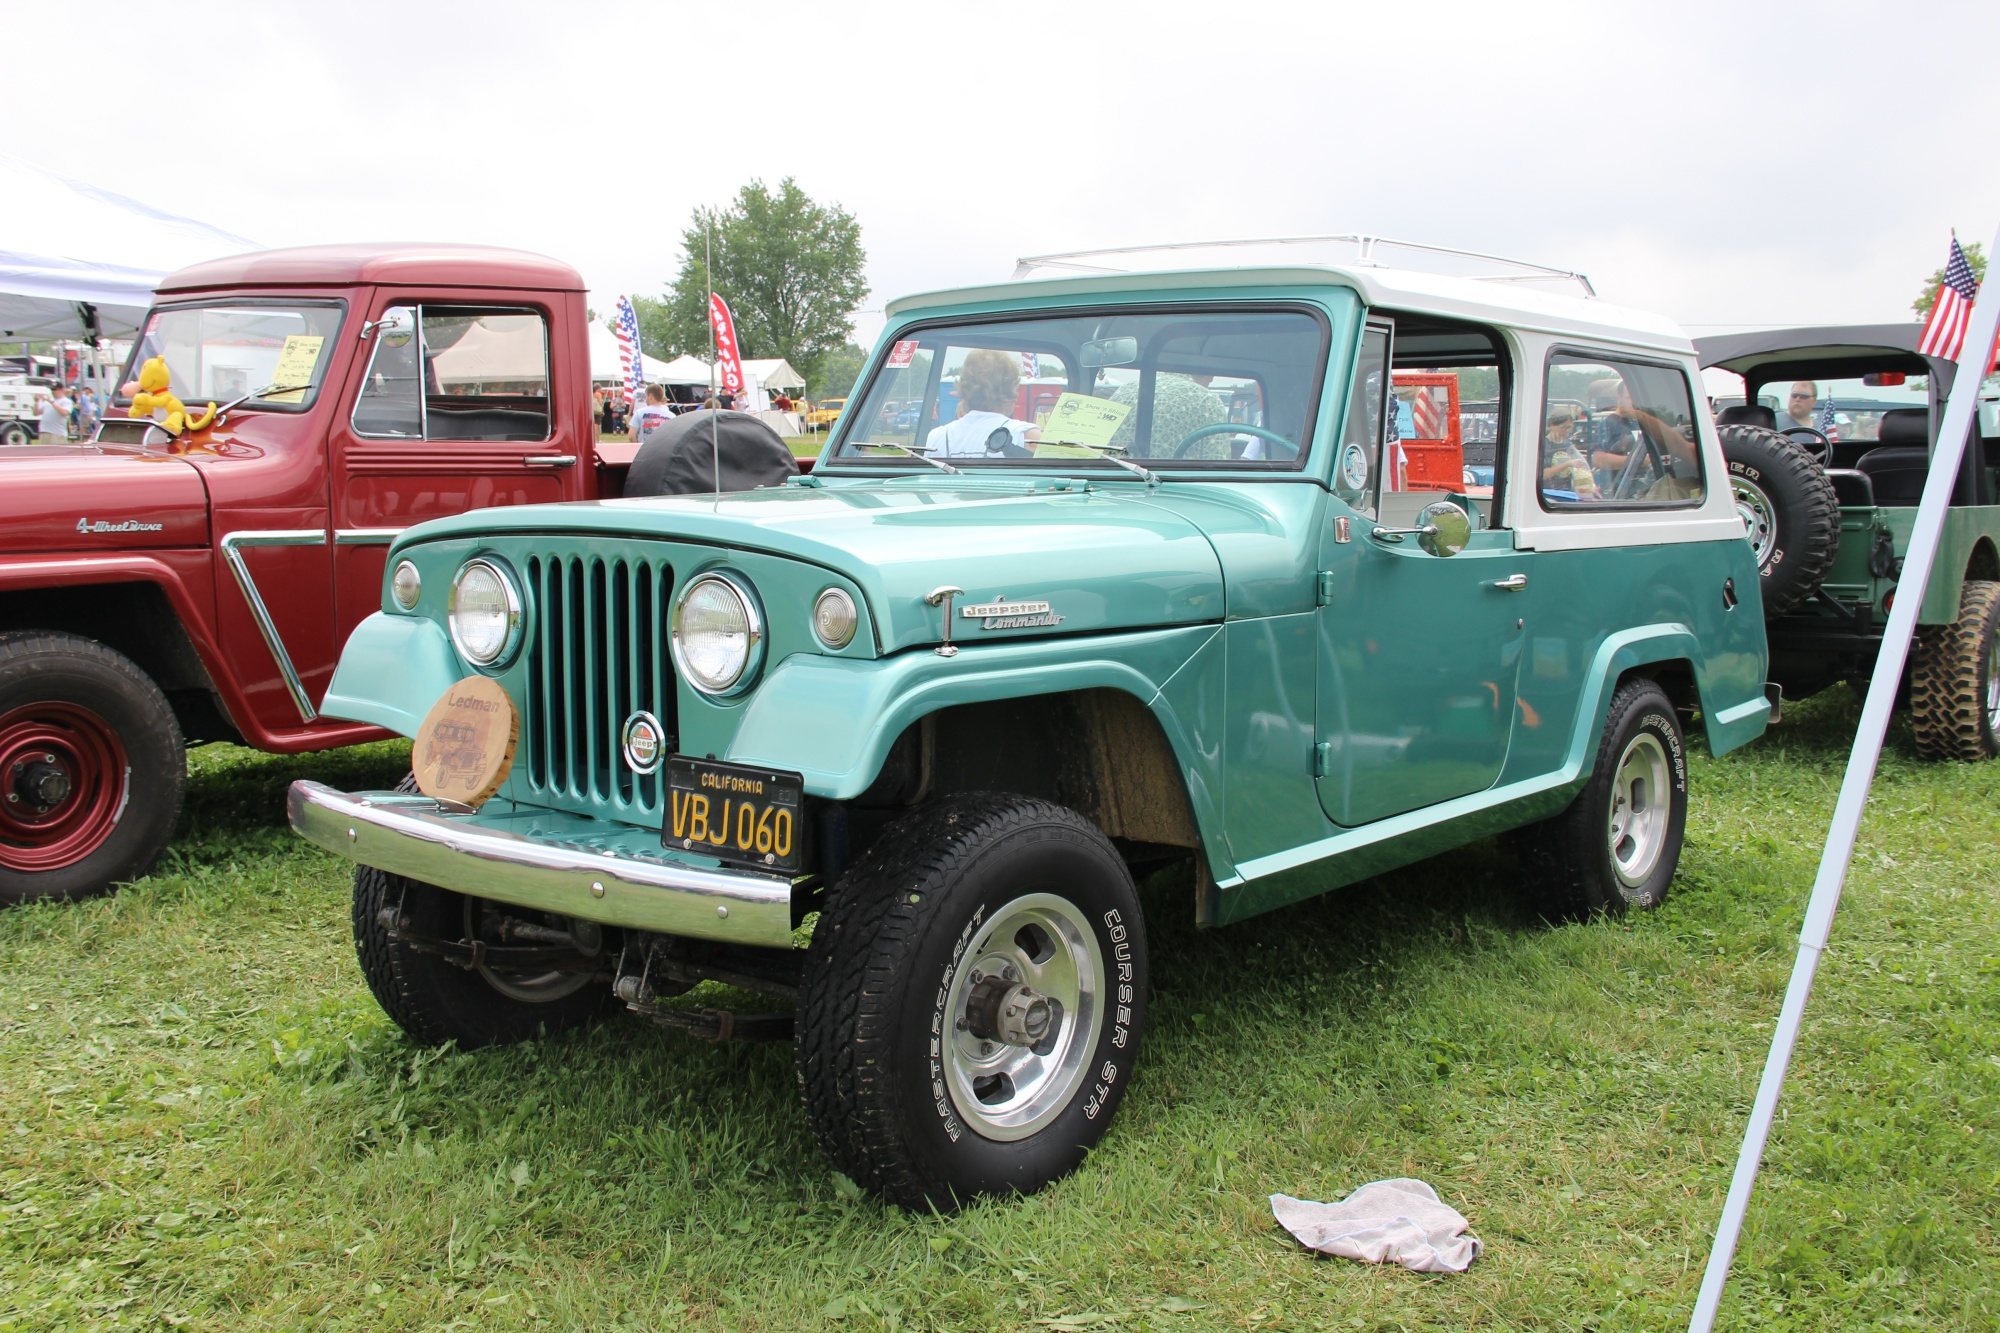 8th Annual Bantam Jeep Heritage Festival - Events Visit Butler Bantam jeep festival photos